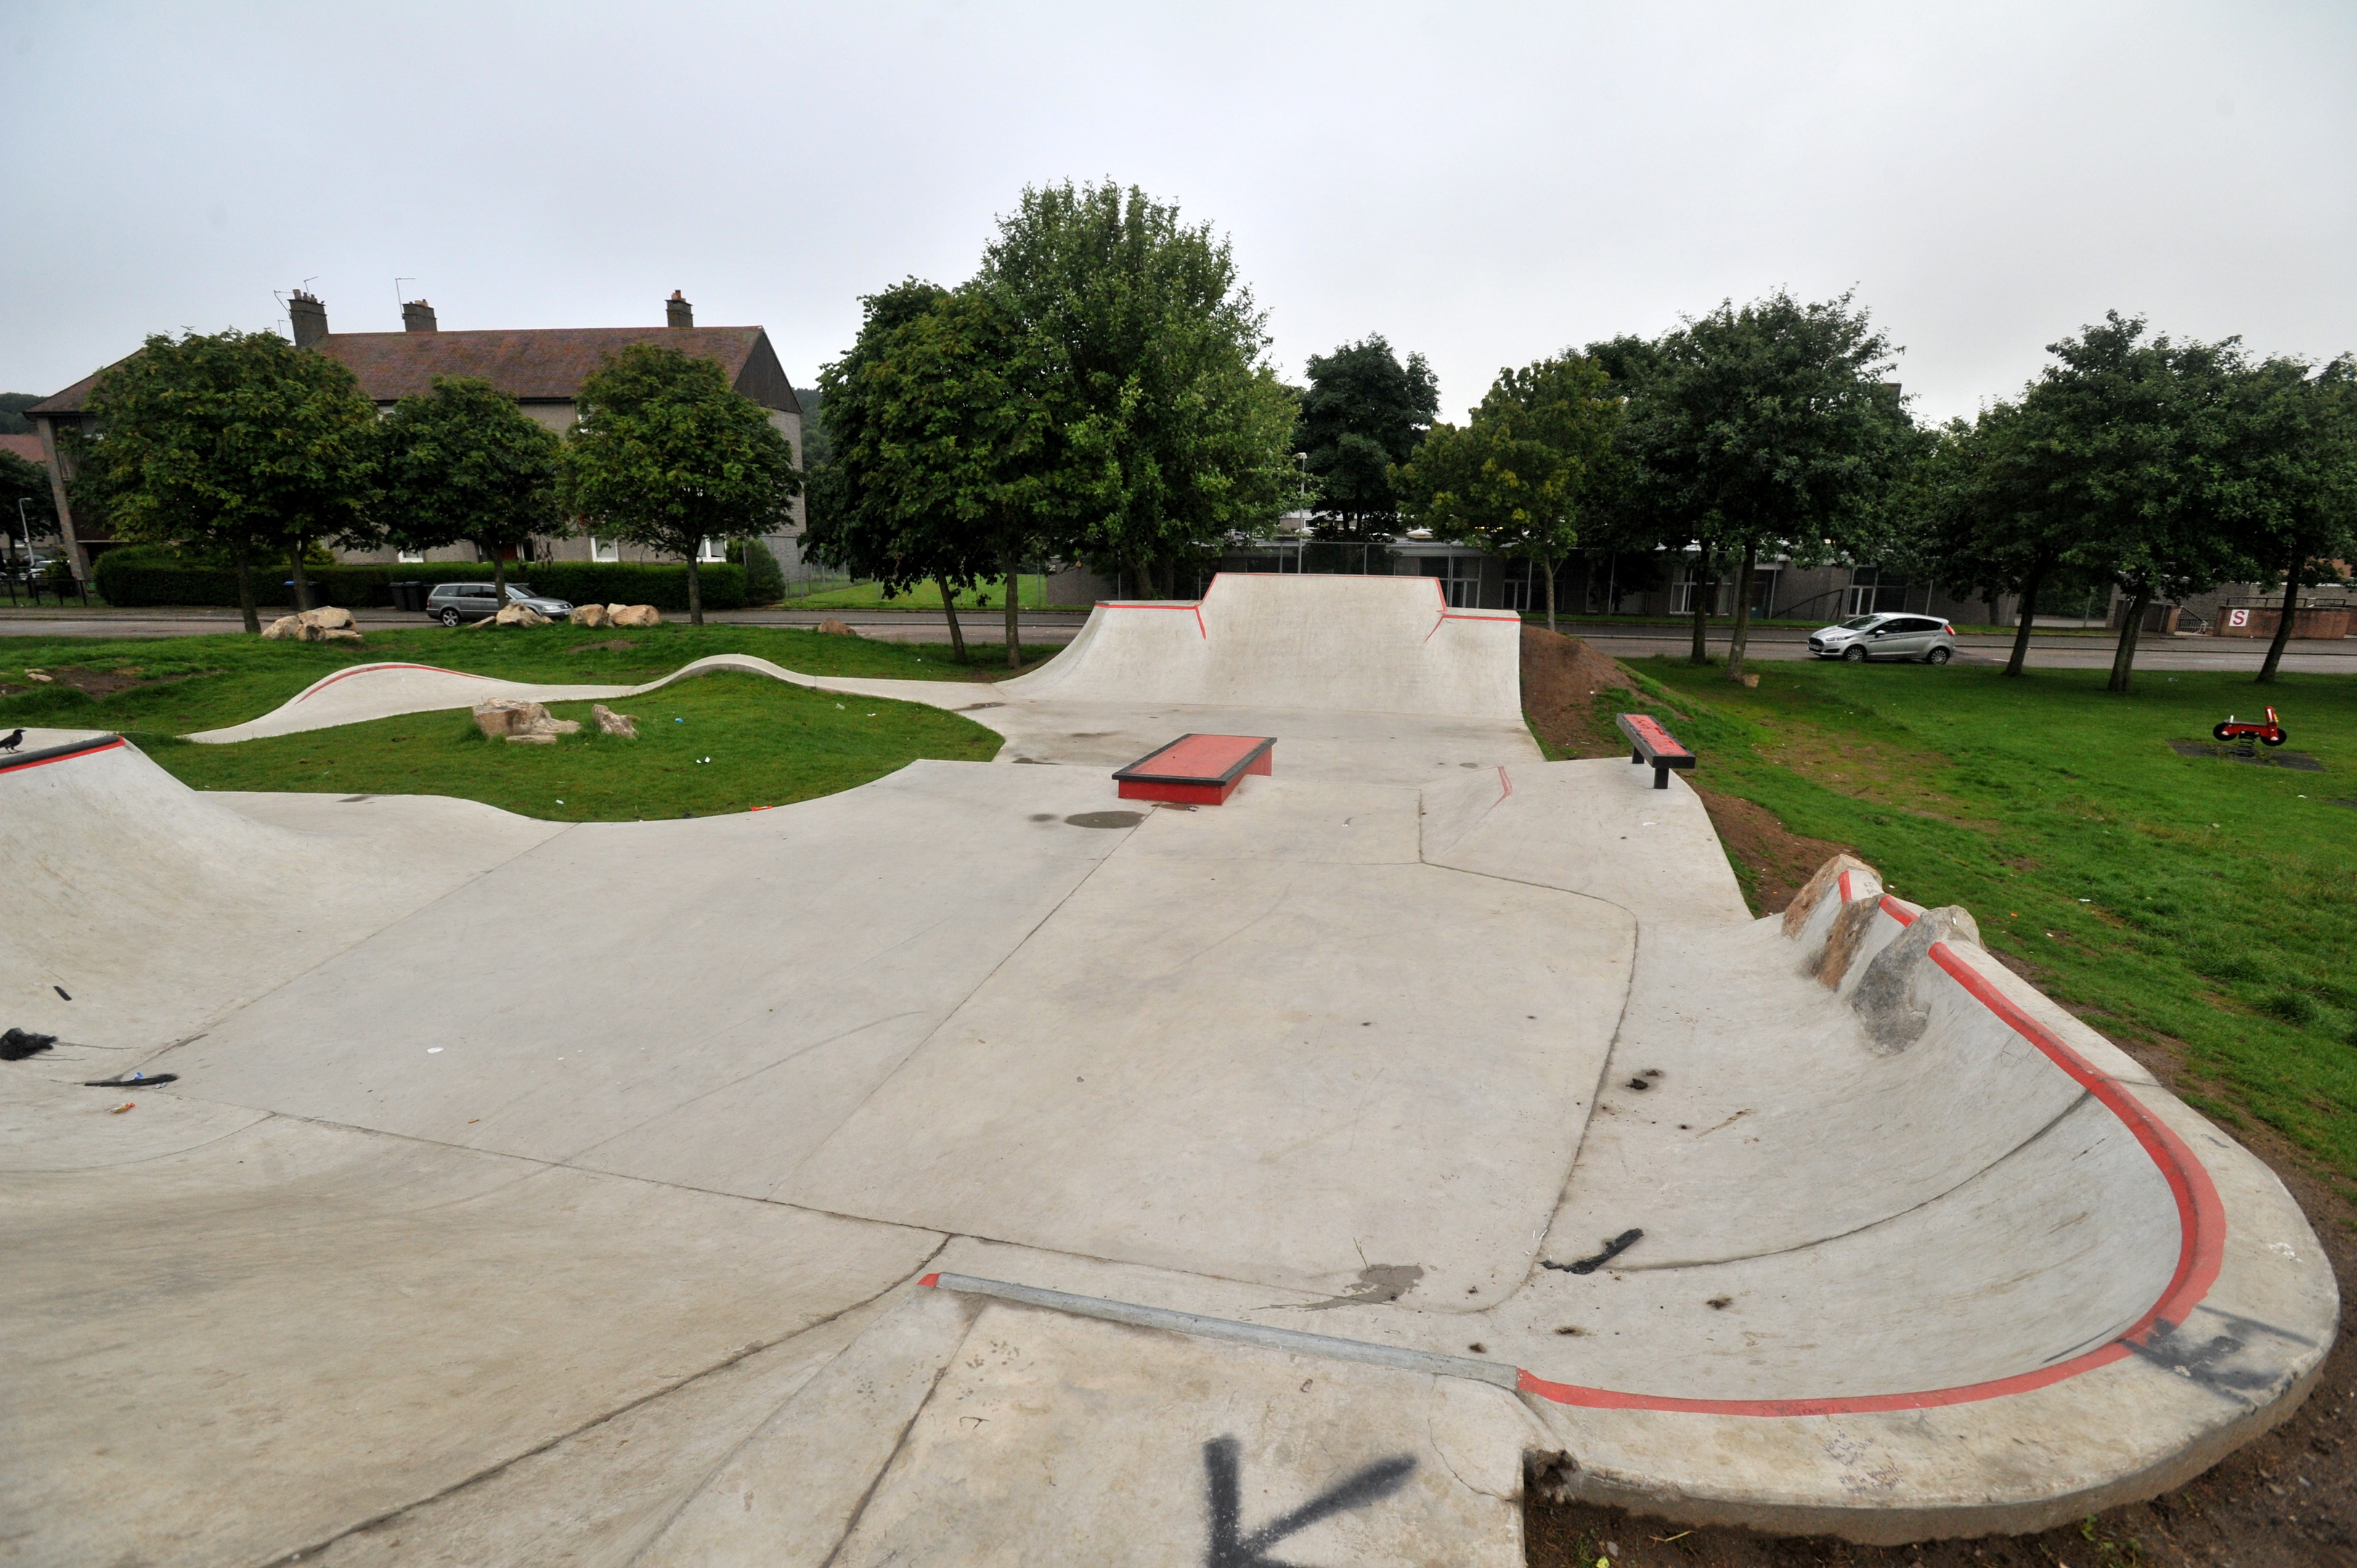 A new skate park has been built at Kincorth Circle in Aberdeen.